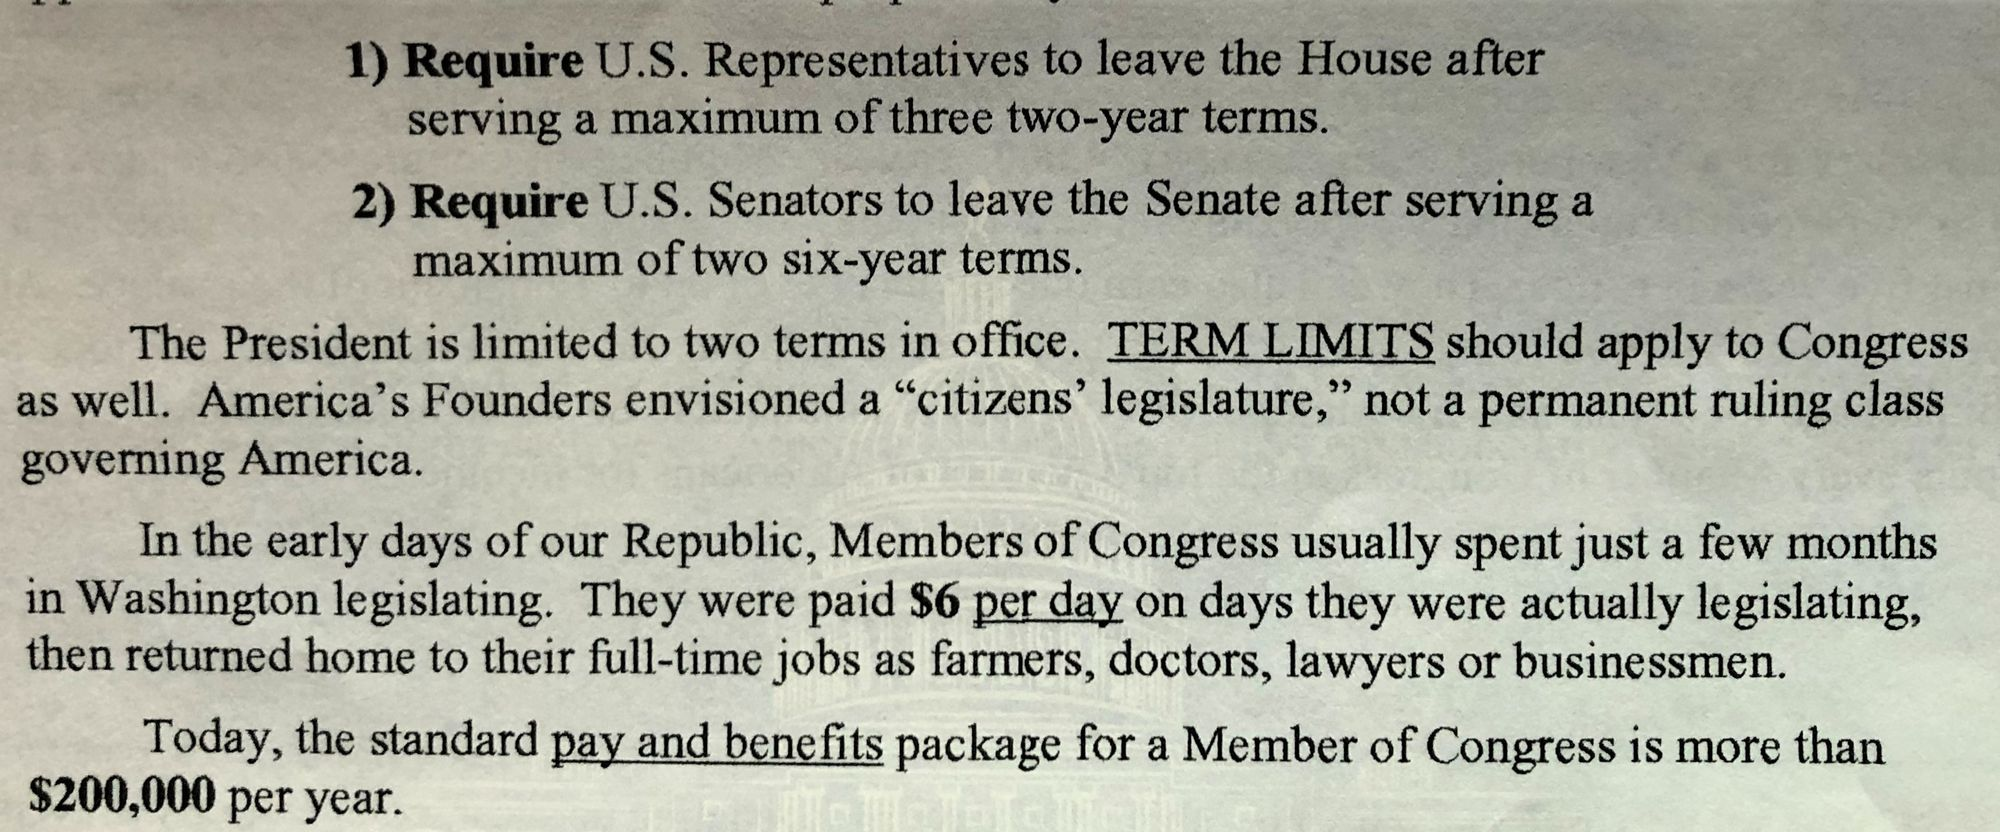 Proposed 28th Amendment To Limit Terms For Congress (Continued)